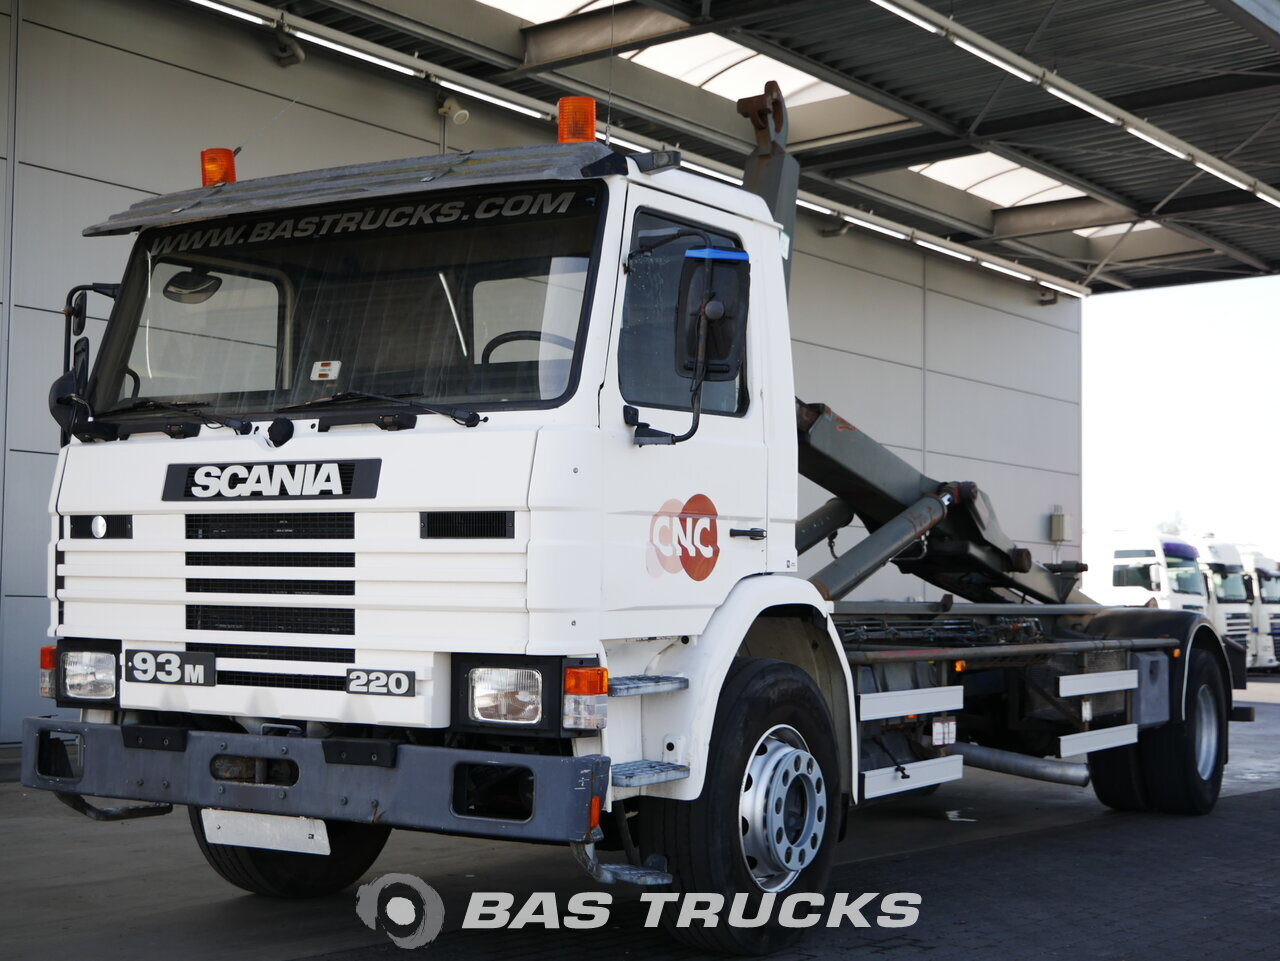 For sale at BAS Trucks: Scania P93 M 4X2 01/1996